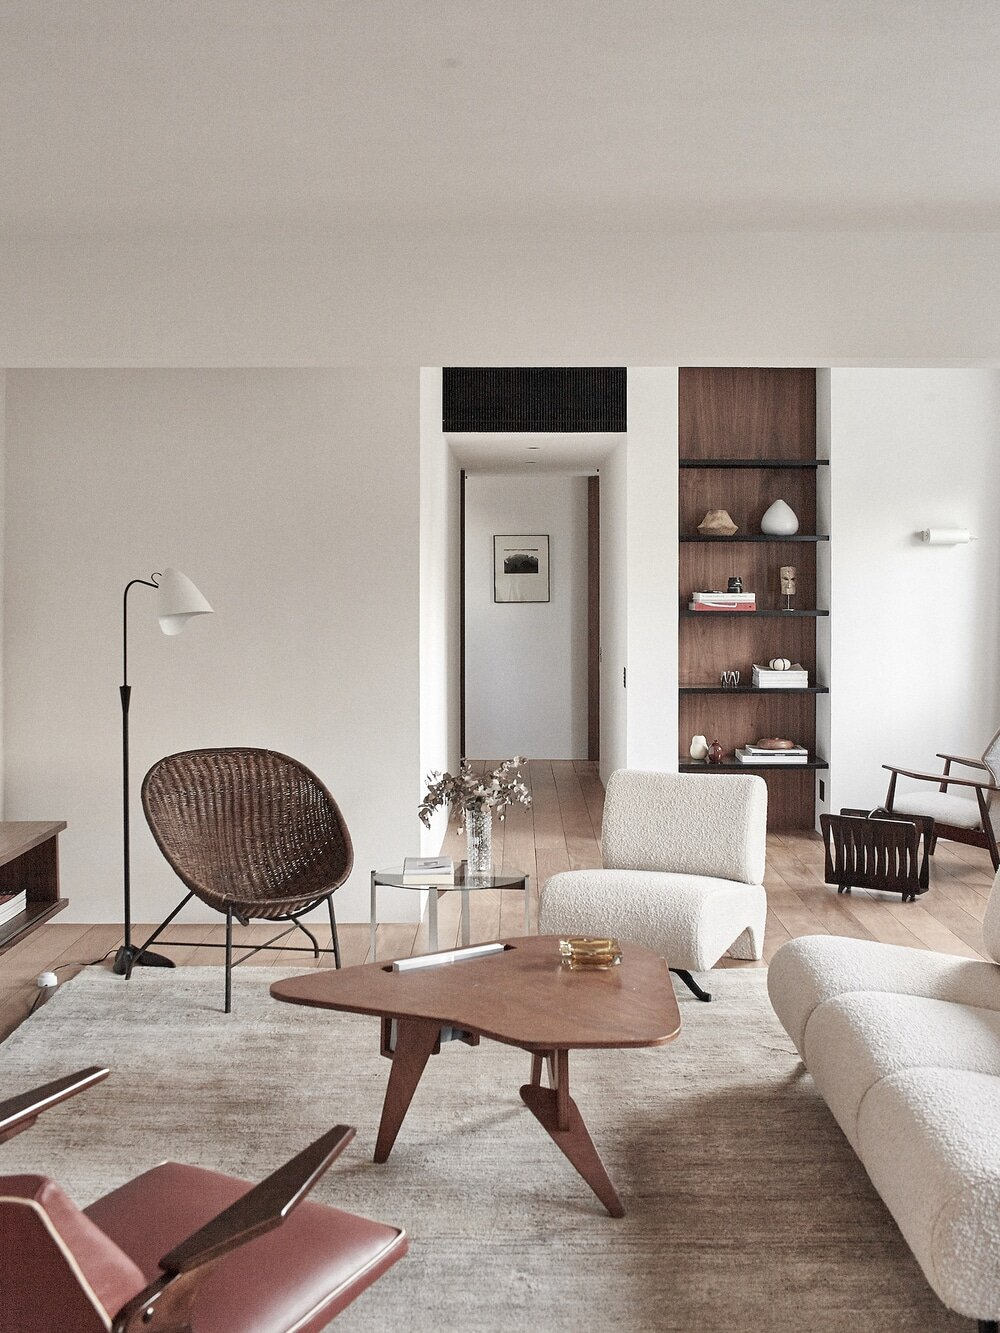 1960's Apartment Completely Renovated by Atelier PECLAT + CHOW in Jardins Neighborhood, São Paulo